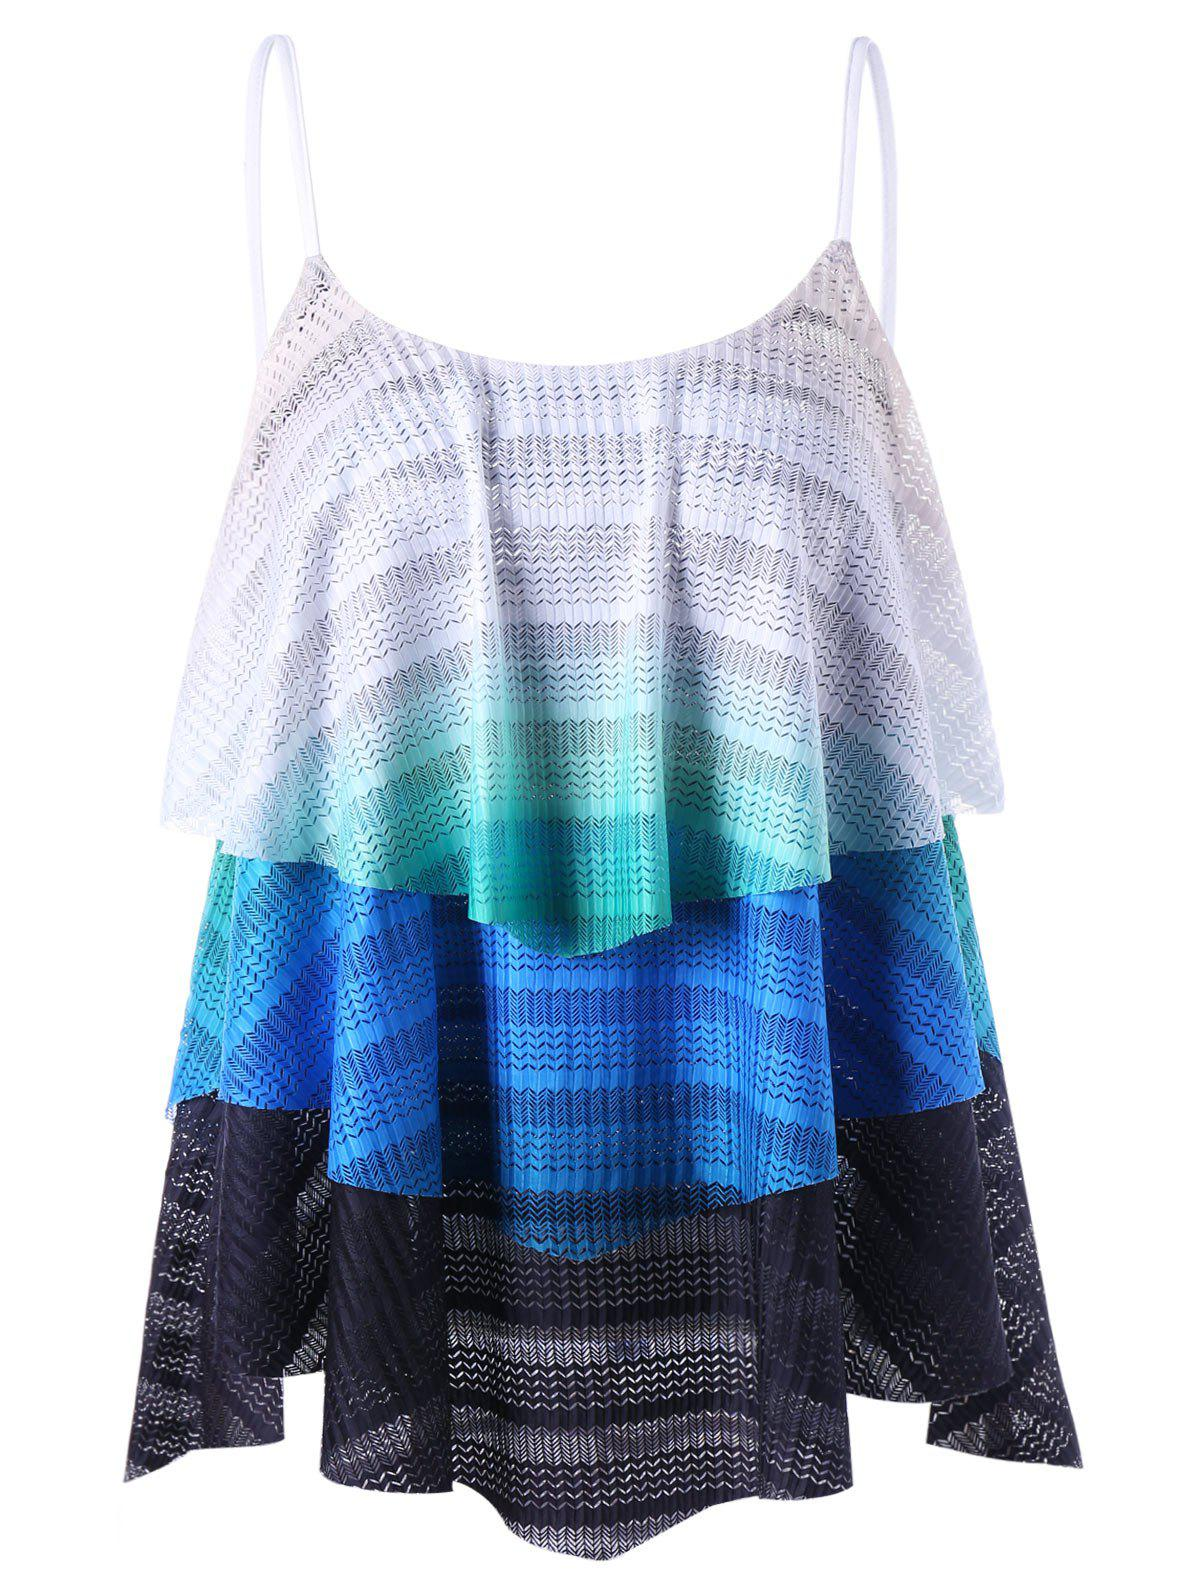 Chevron Layered Flowy Tank Top - multicolorcolore 2XL